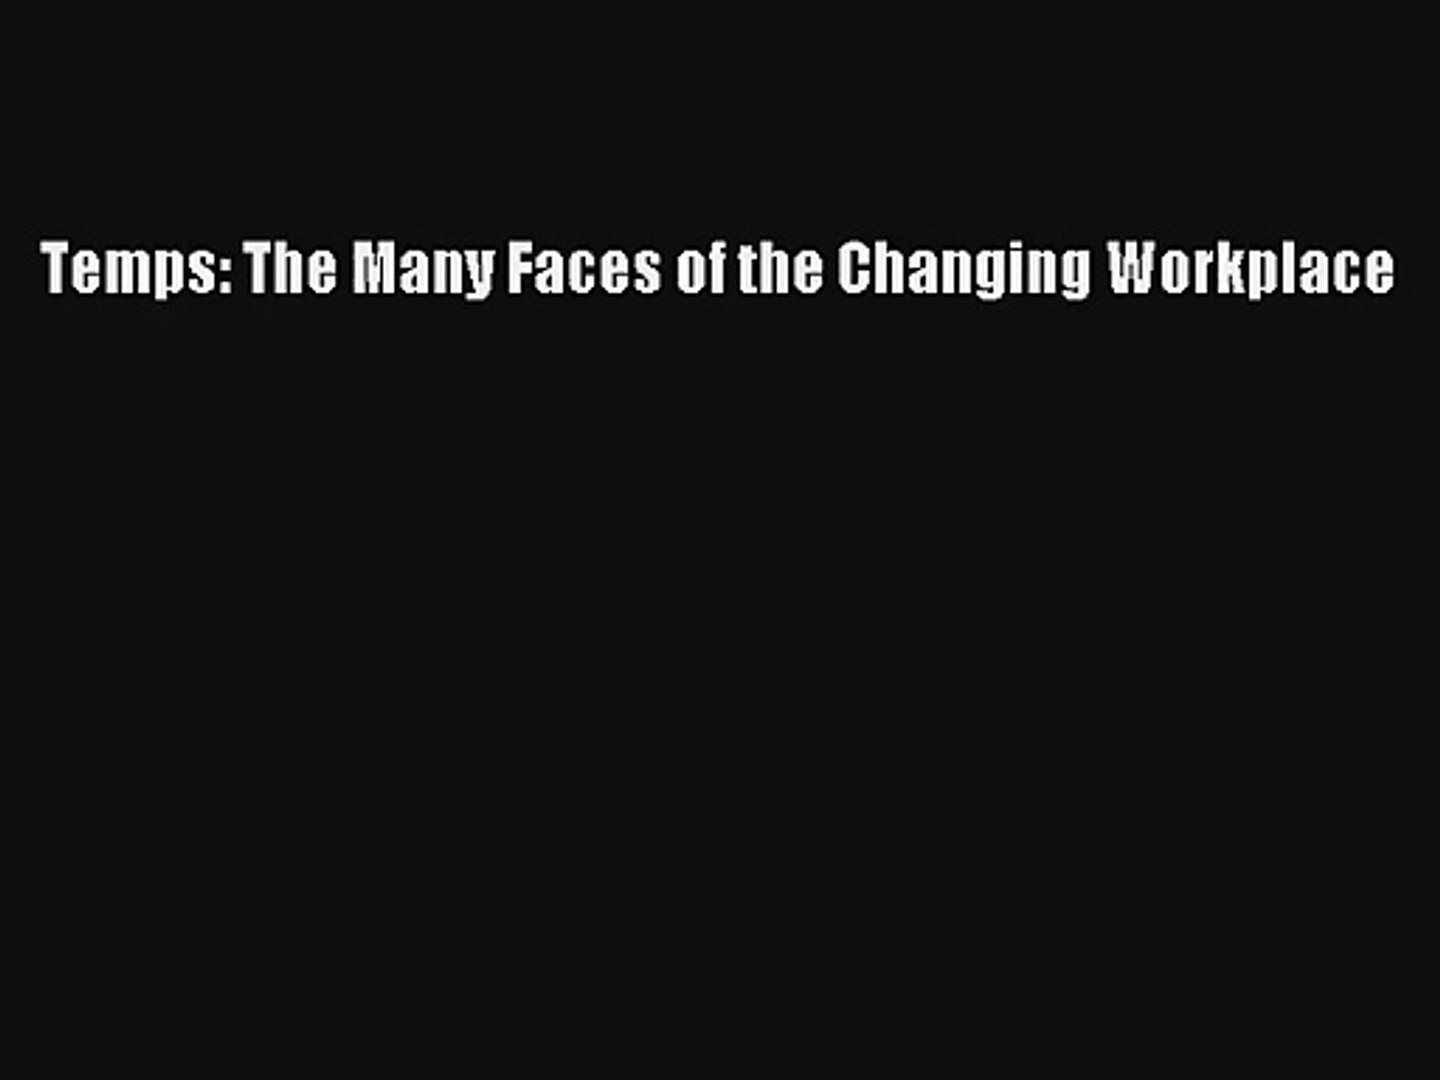 Temps: The Many Faces of the Changing Workplace Download Book Free